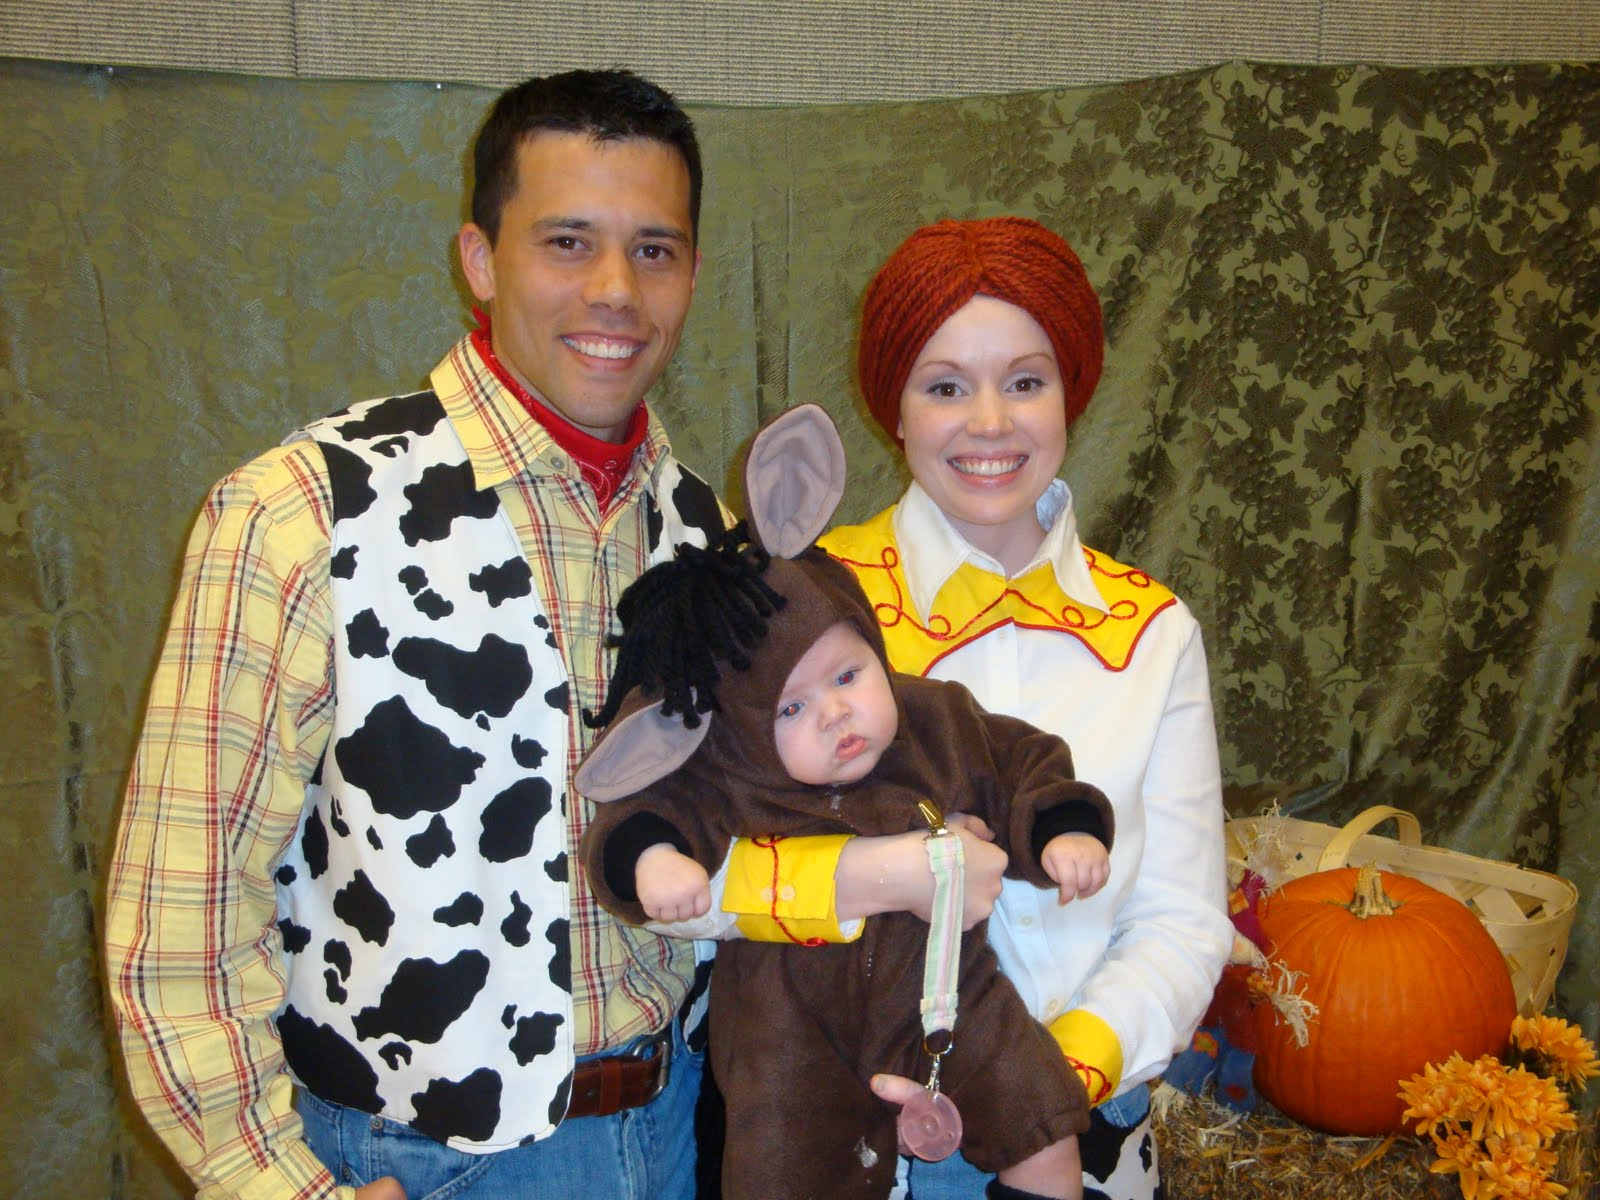 Jessie and Woody Costumes Homemade http://matthewandmarilyn.blogspot.com/